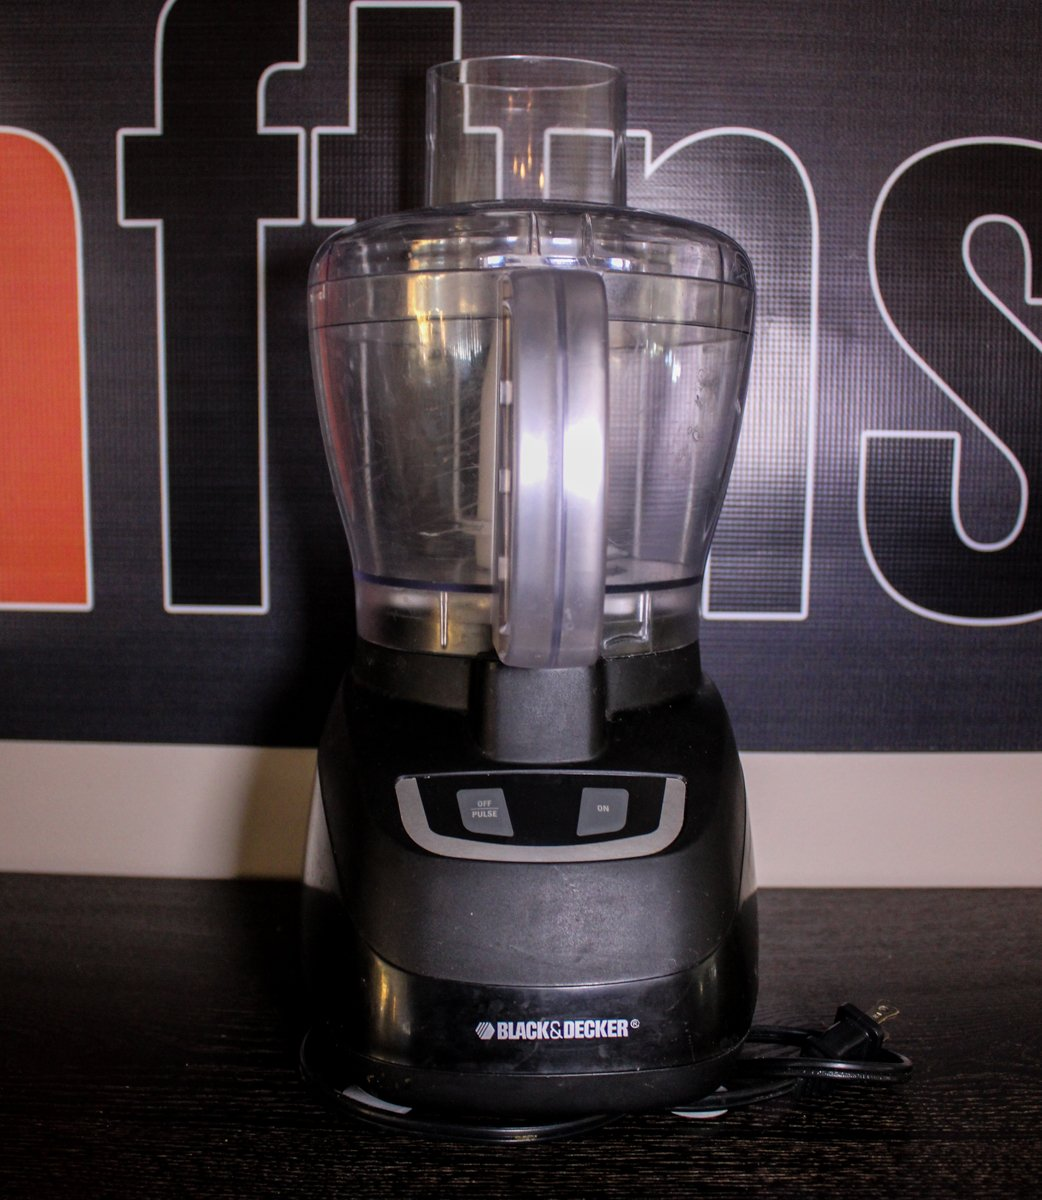 Black decker fp1600b 8 cup food processor review 1 protein black decker fp1600b 8 cup food processor review forumfinder Choice Image